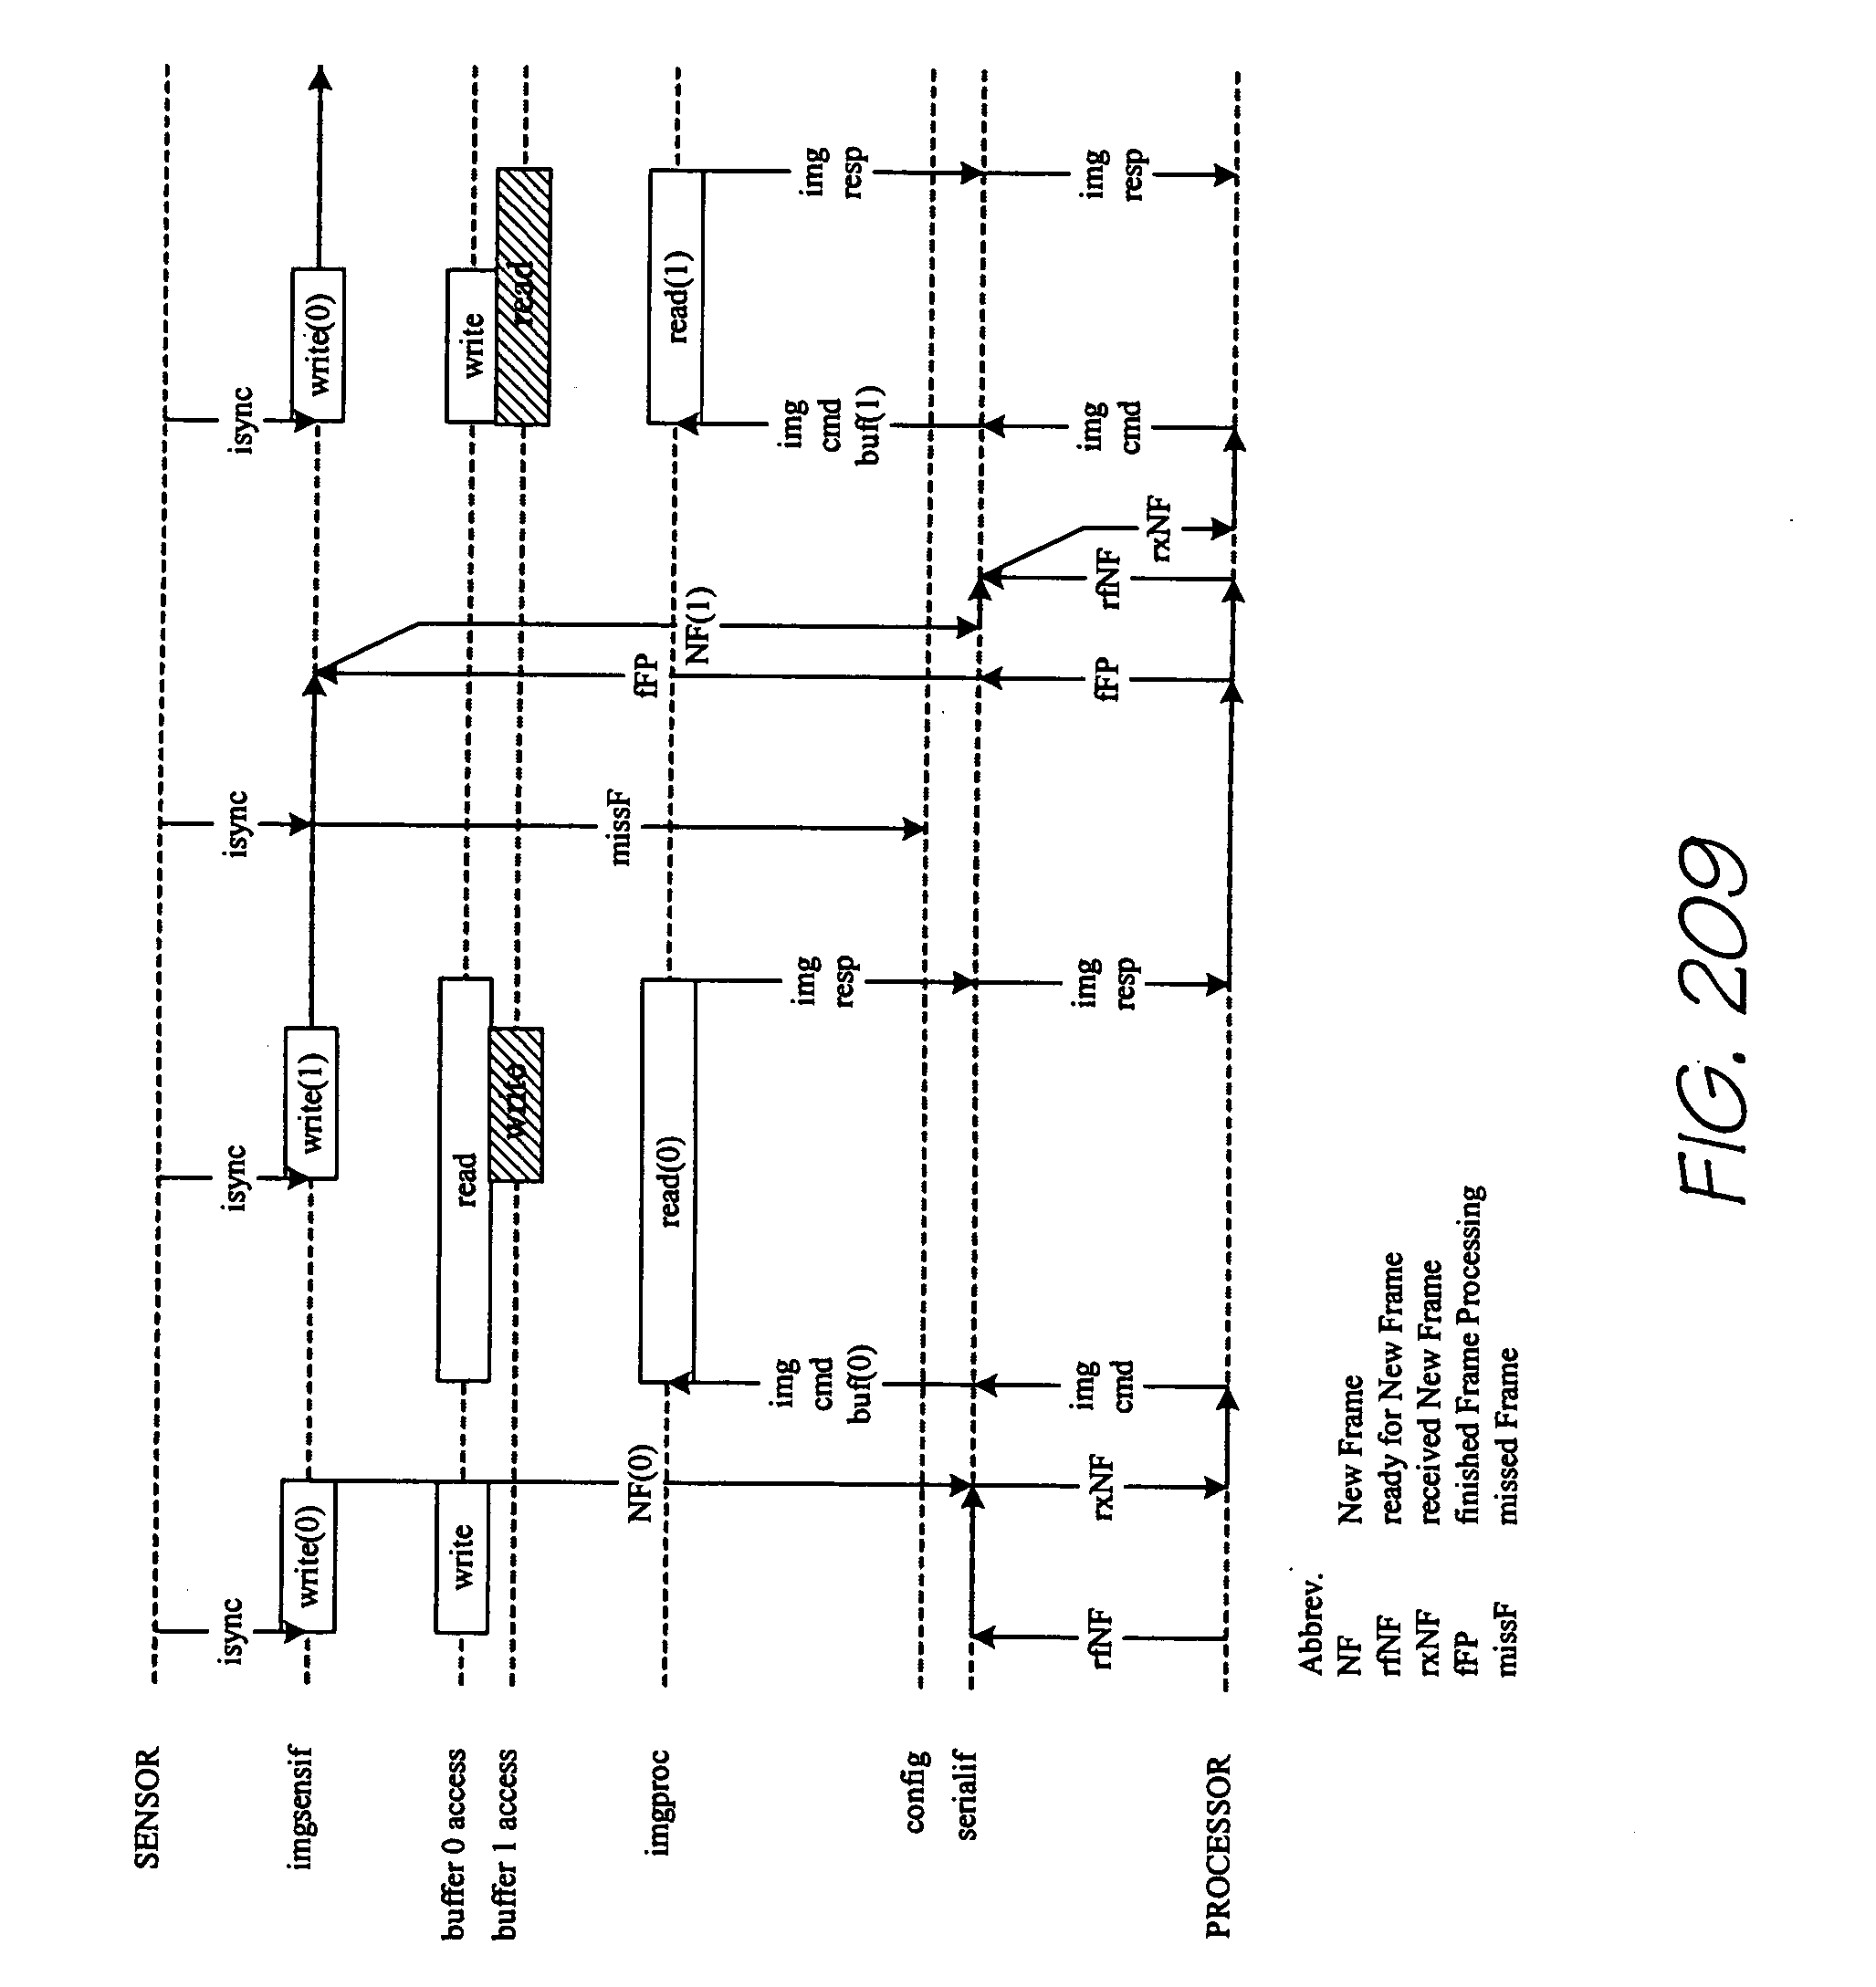 Patent Us 7128270 B2 Specialized Circuit Drives 150v Piezoelectric Motor Using Lowvoltage Images